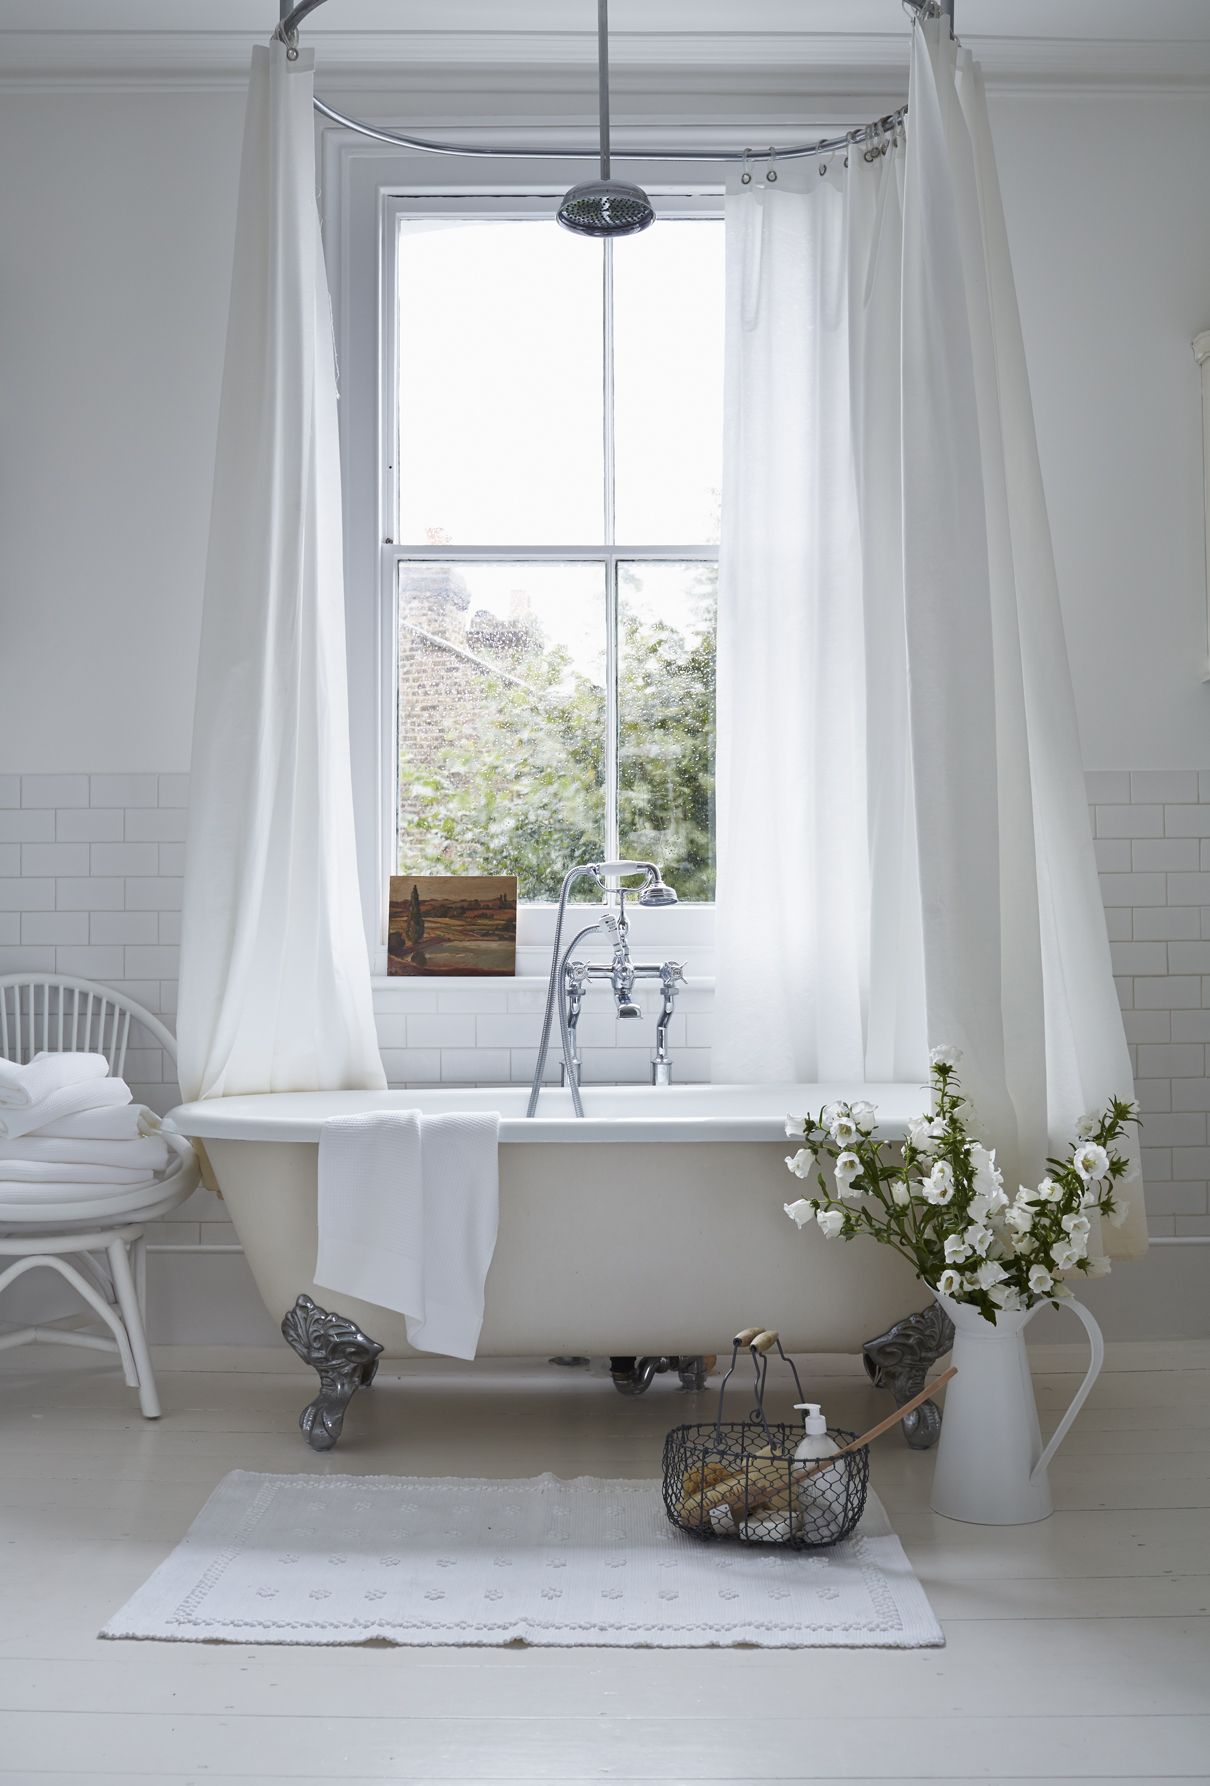 Our Favorite Pins Of The Week Amazing Bathtubs With Images Chic Bathrooms Bathroom Design Bathroom Inspiration